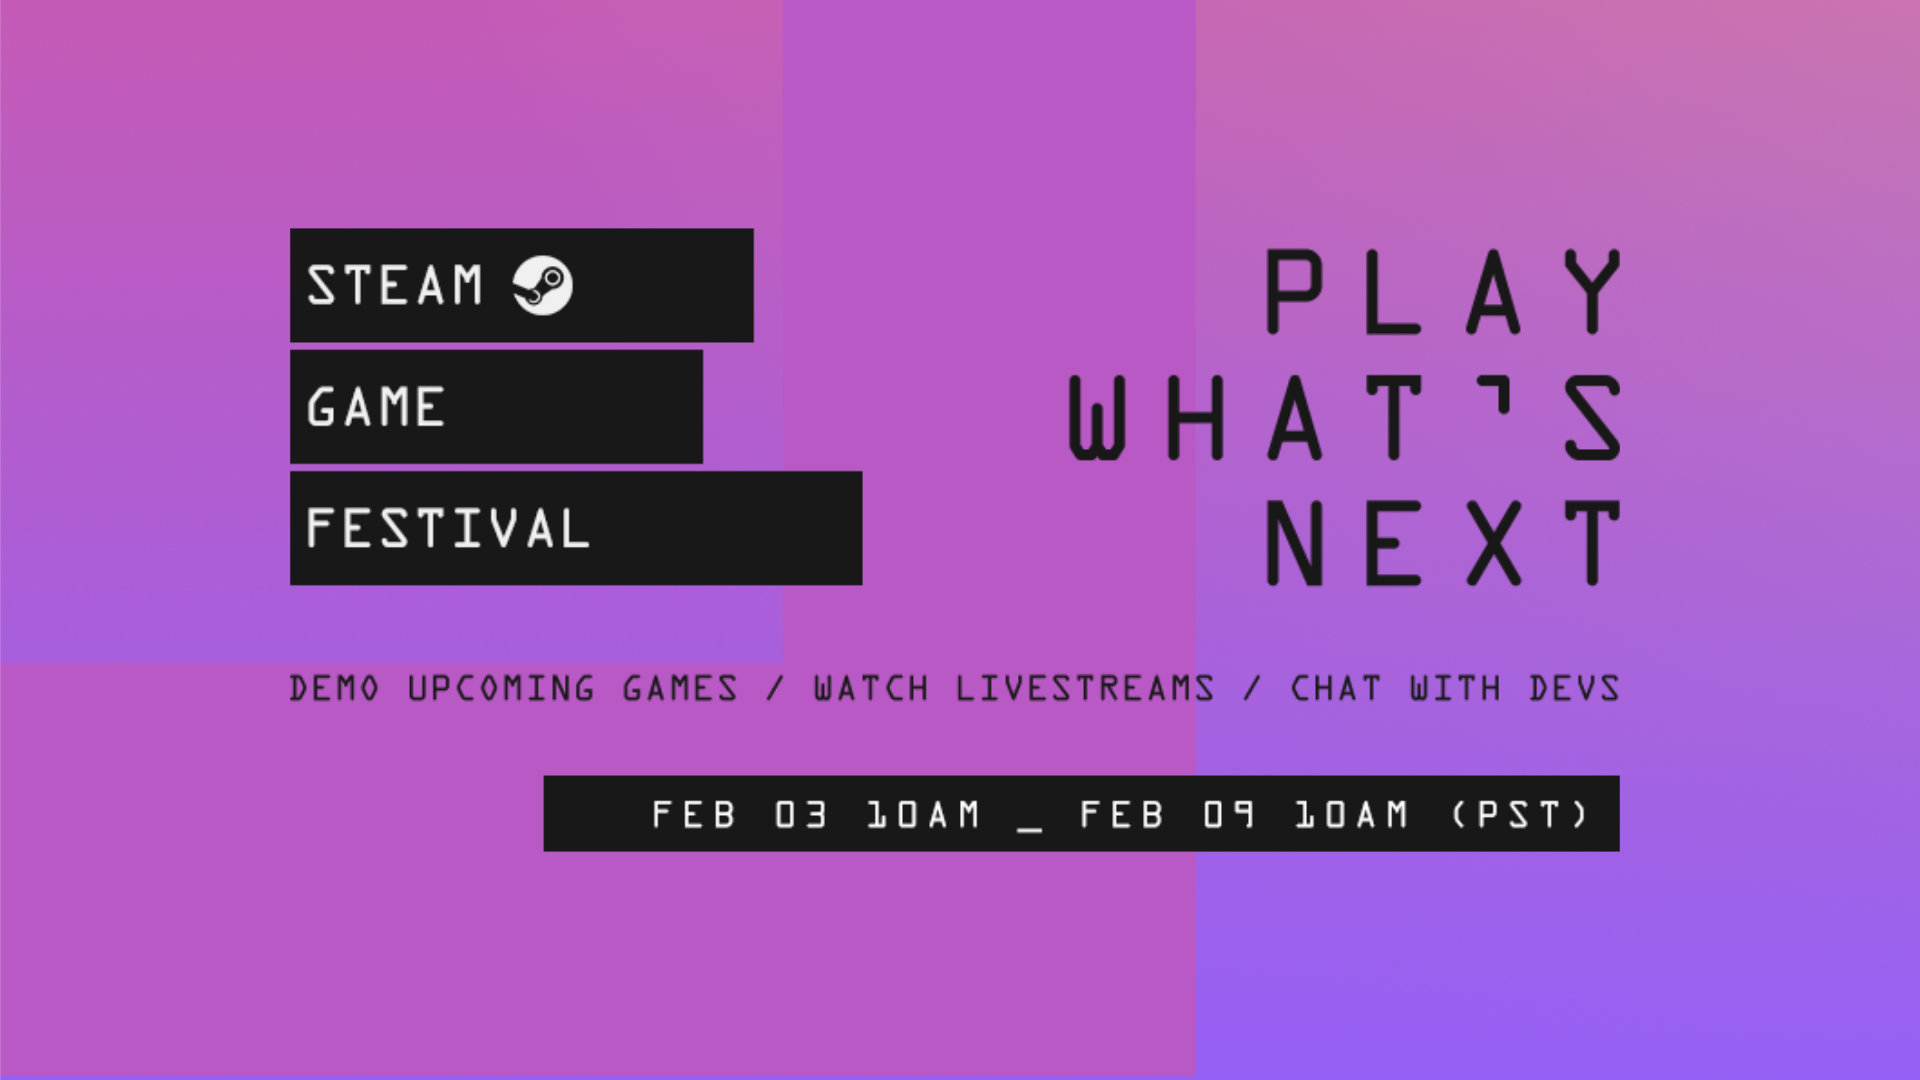 Steam Game Festival Graphic for February 2021